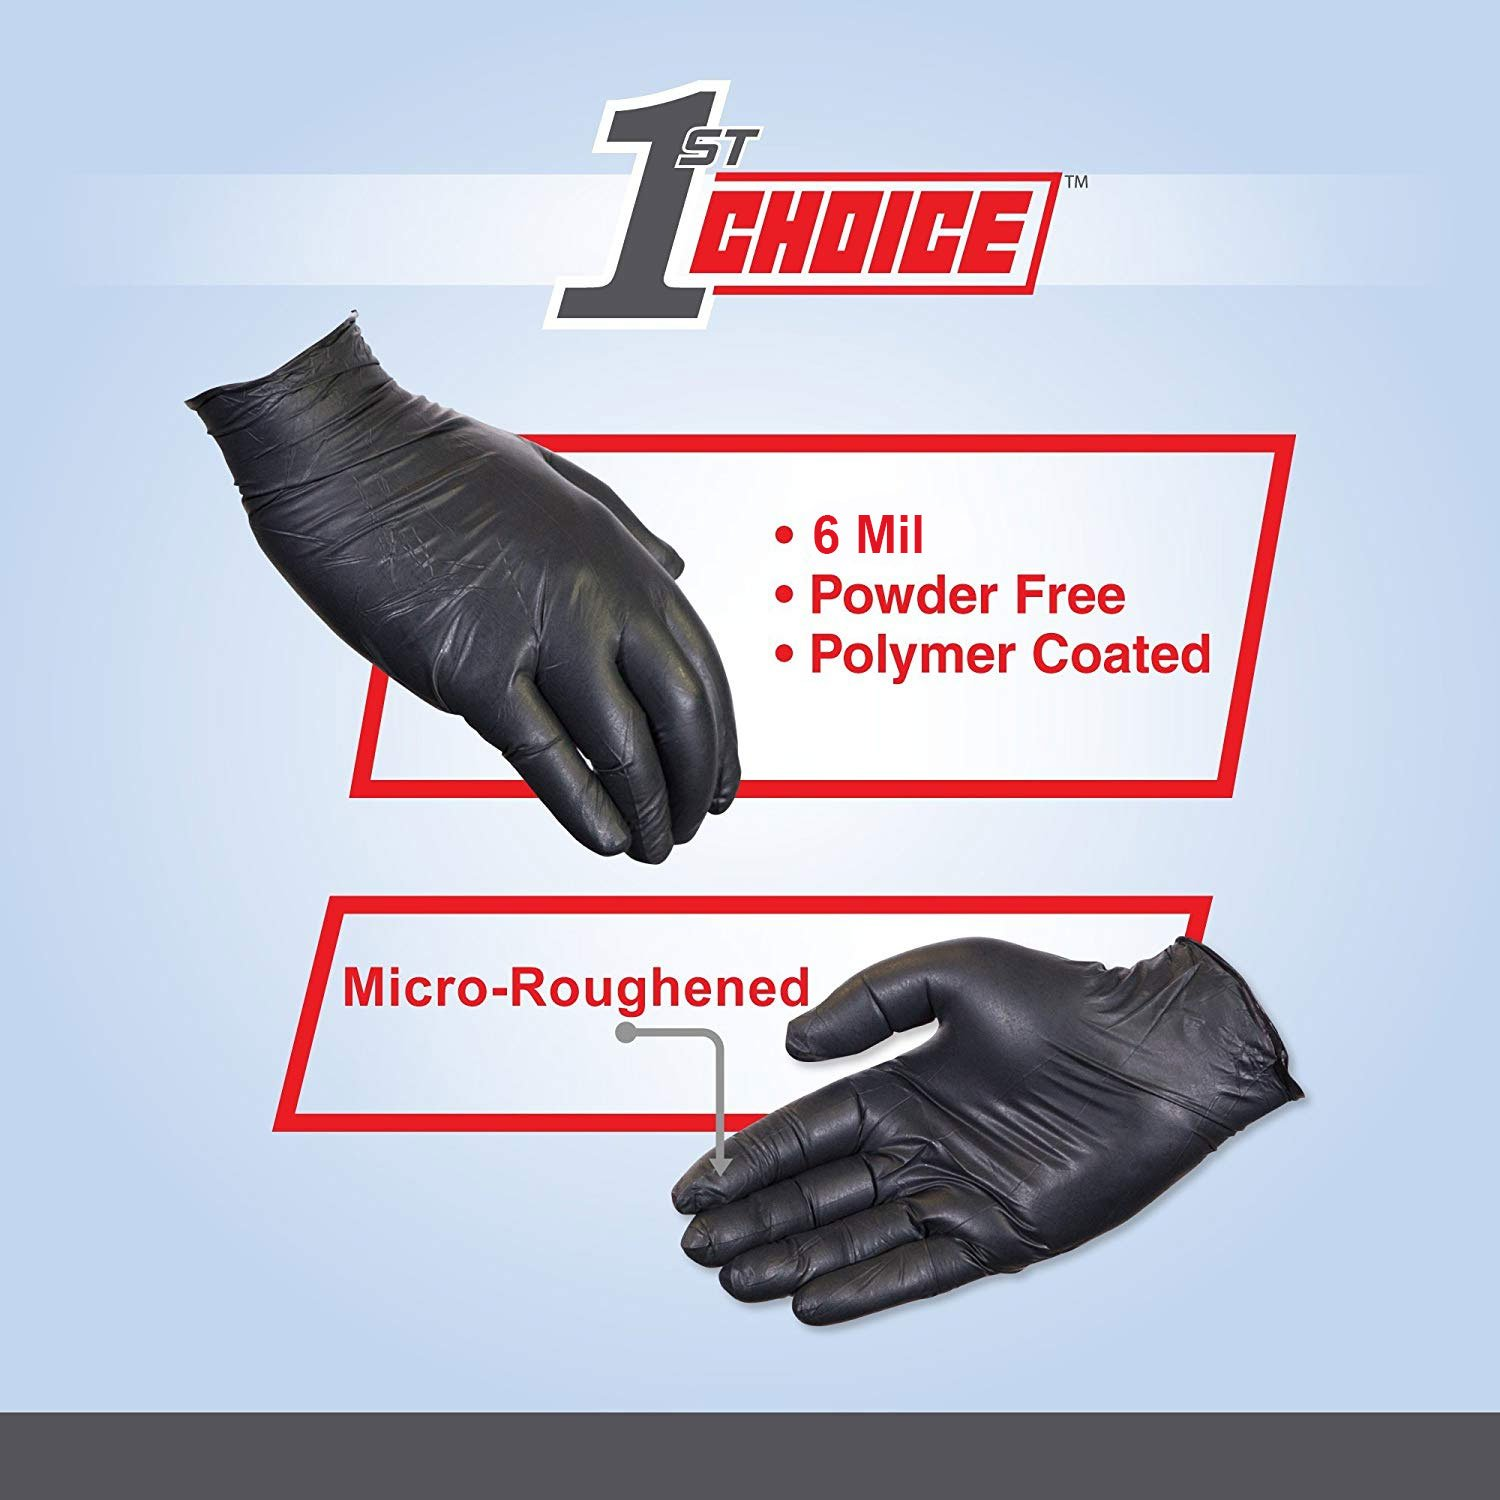 1st Choice Premium Safety Black Nitrile 6 Mil Thick Disposable Gloves, Large, Case of 1000 - Industrial, Latex Free by 1st Choice (Image #3)